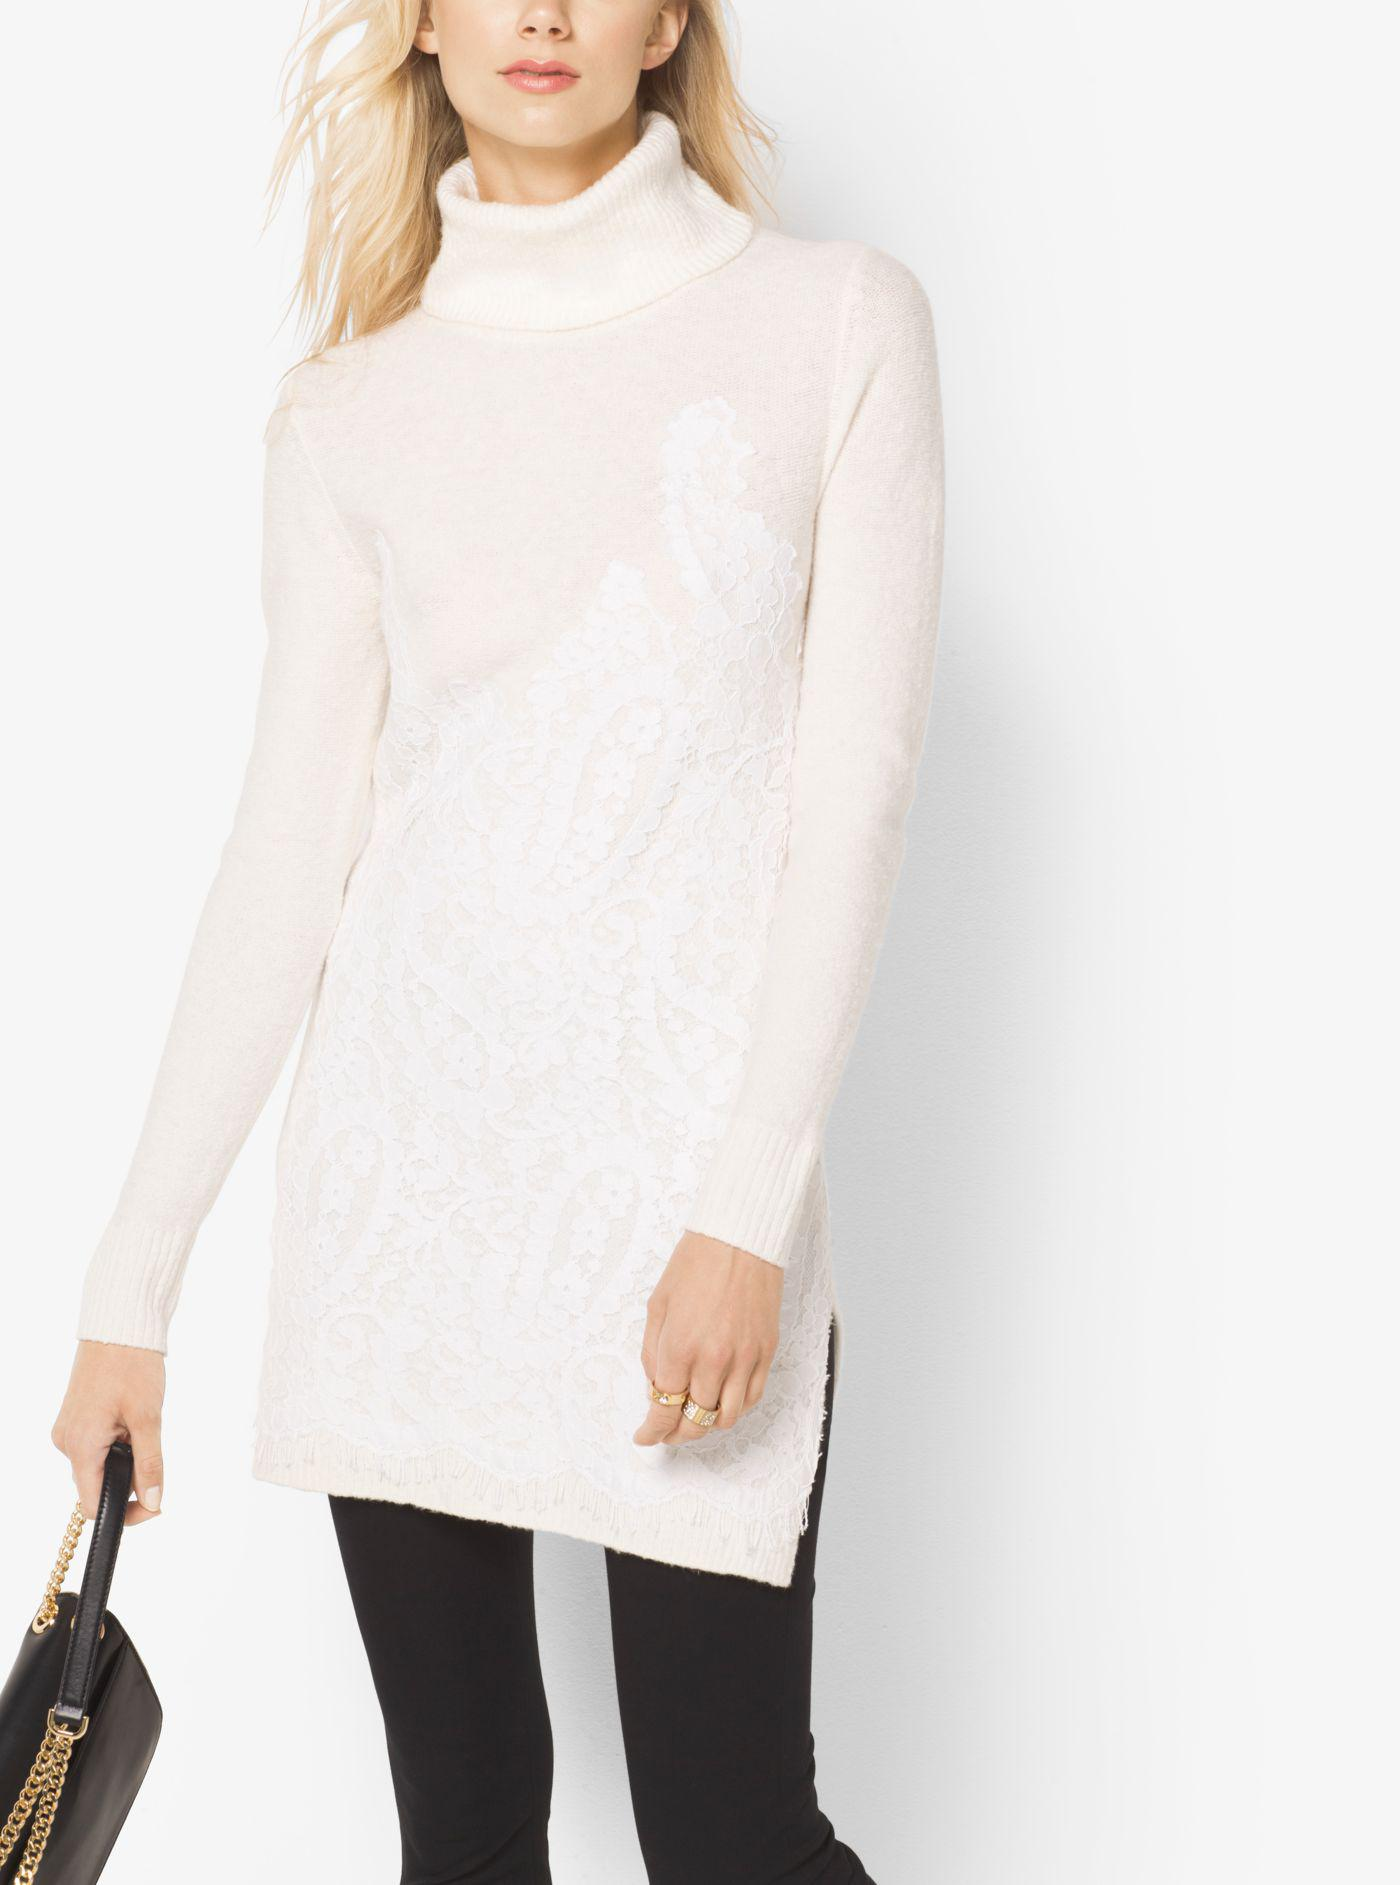 5098fa8a6b1 Lyst - Michael Kors Lace-embroidered Turtleneck Tunic in White